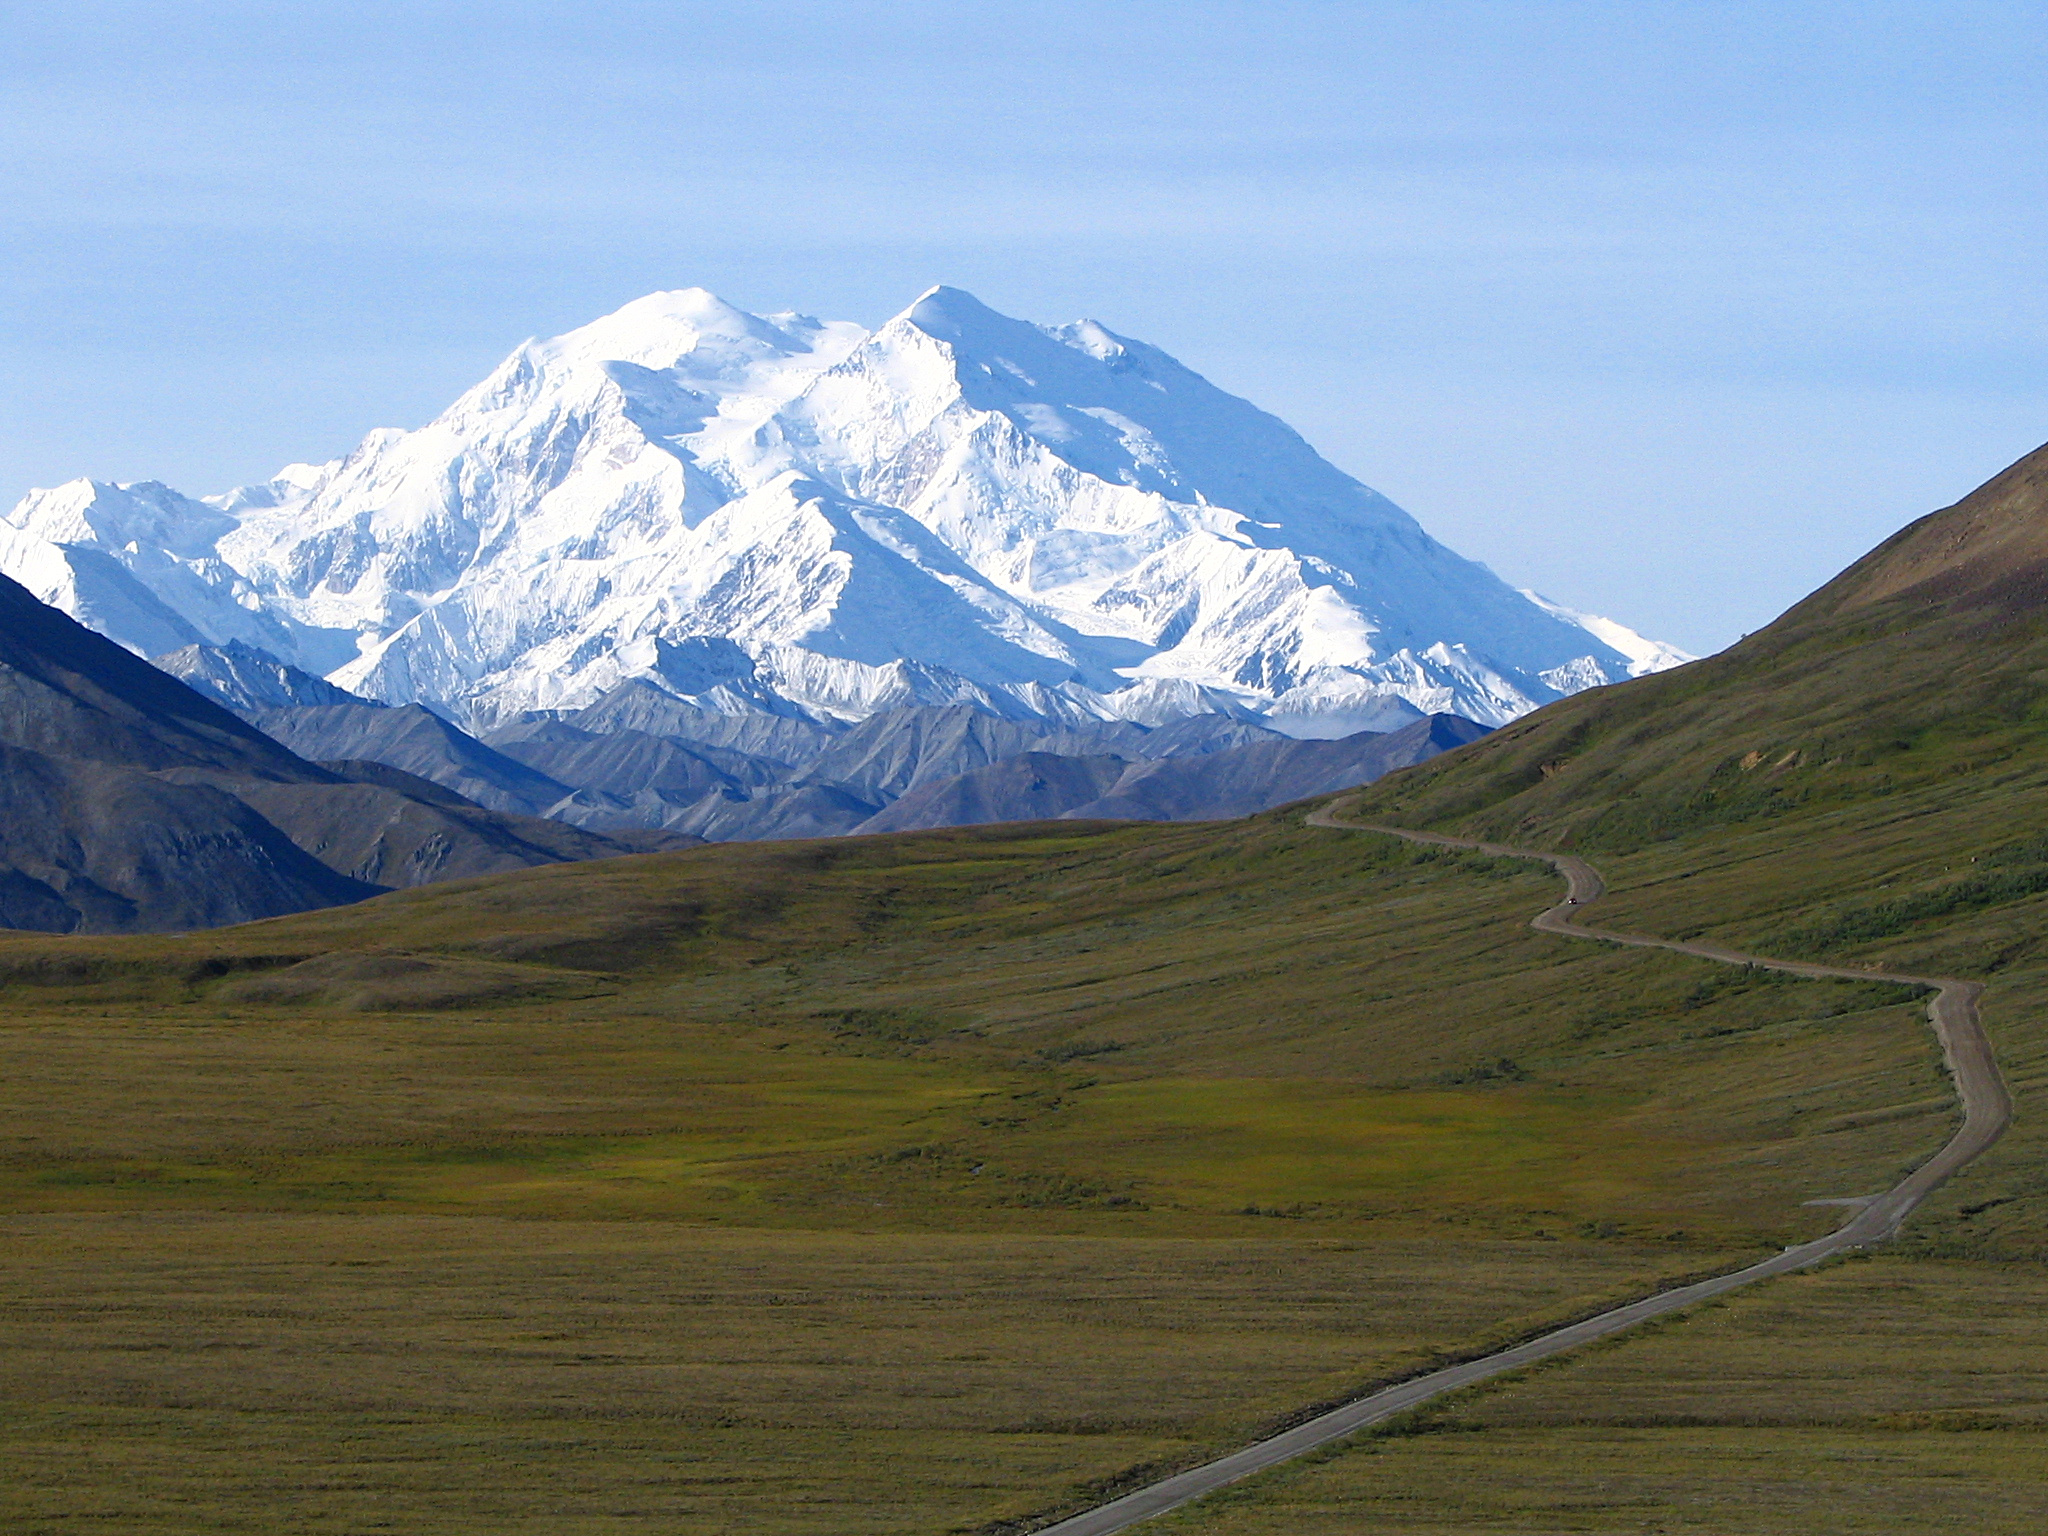 A picture of Denali, the tallest mountain in the United States